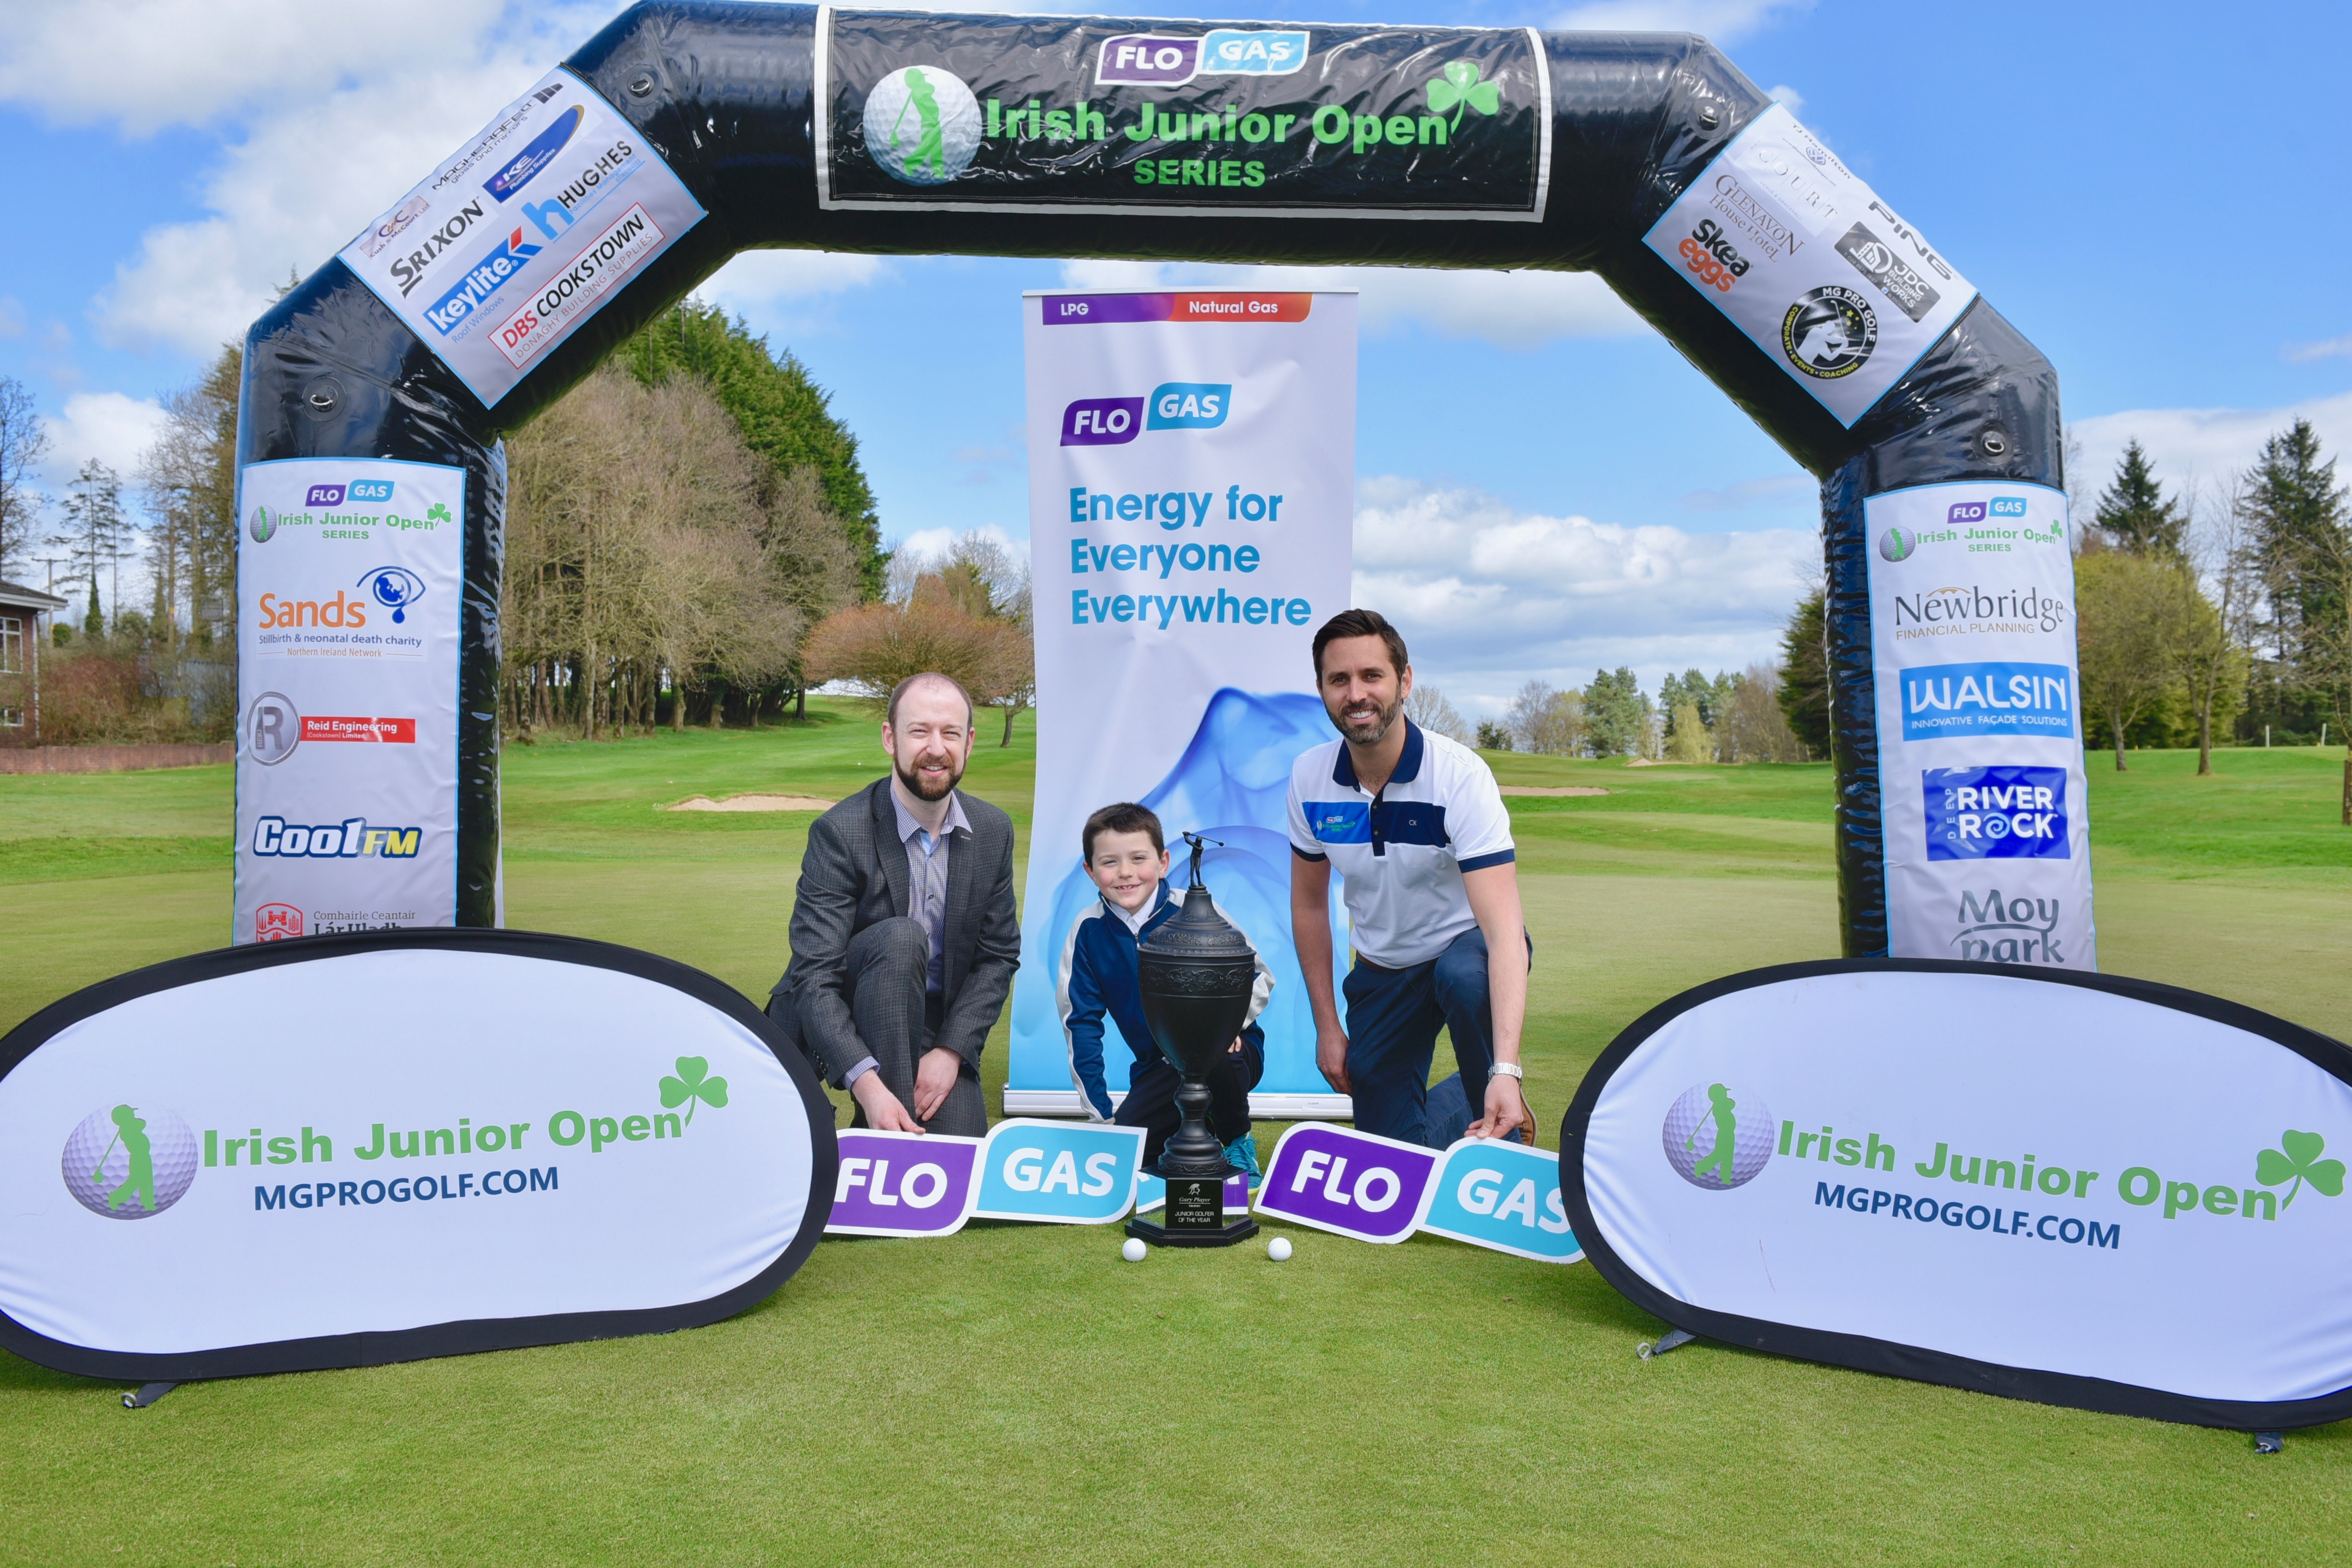 Flogas Irish Junior Golf Open tees up for exciting 2018 Series